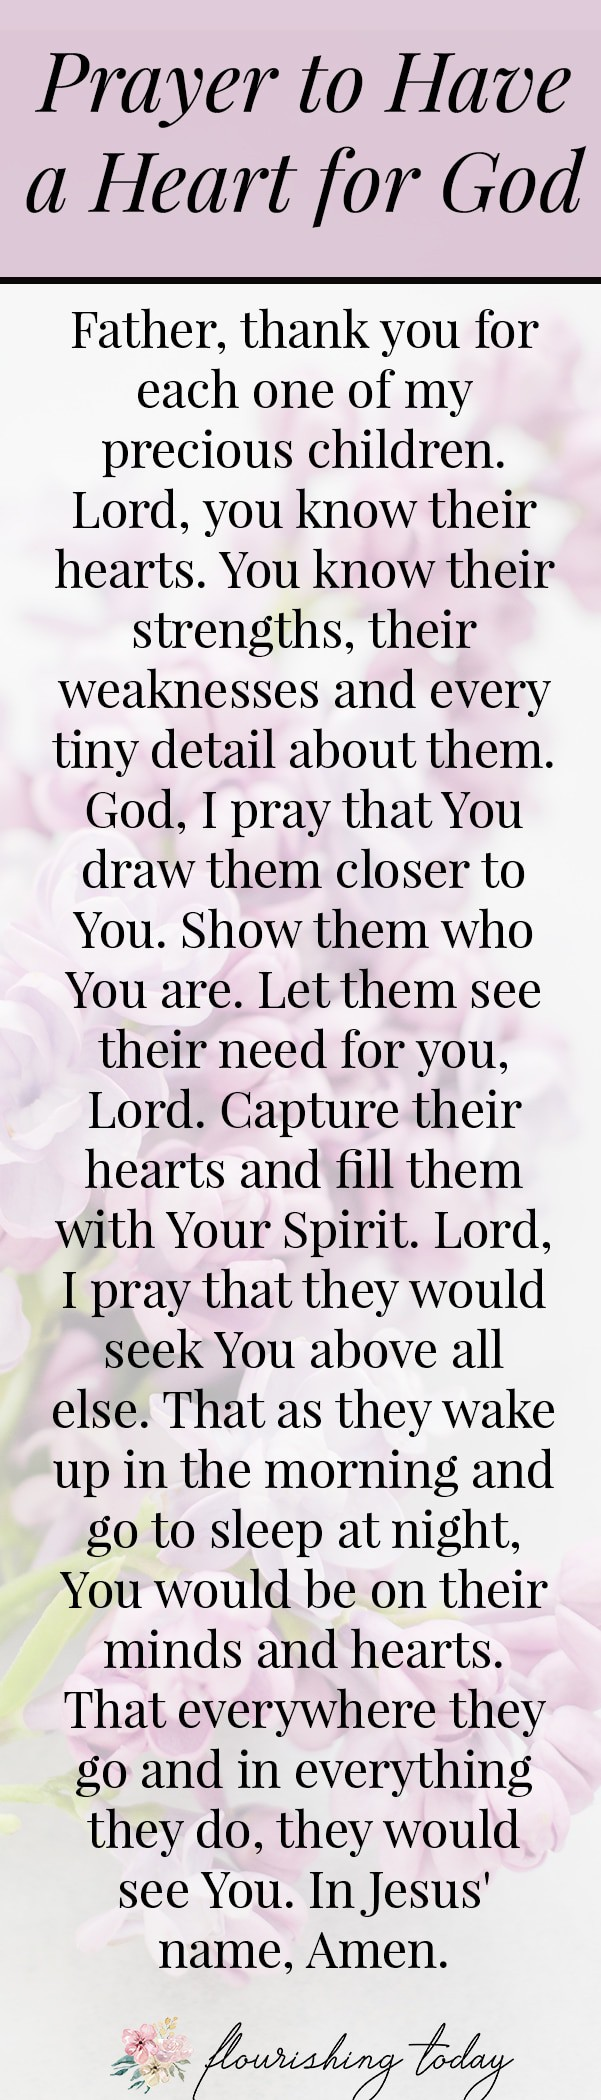 Do you pray specifically and strategically for your family? There is power when we get intentional with our prayers. Here are 5 prayers for my family for unity, strength, purpose, relationships and to have a heart for God. #prayer #prayers #family #intentionality #freeprintable